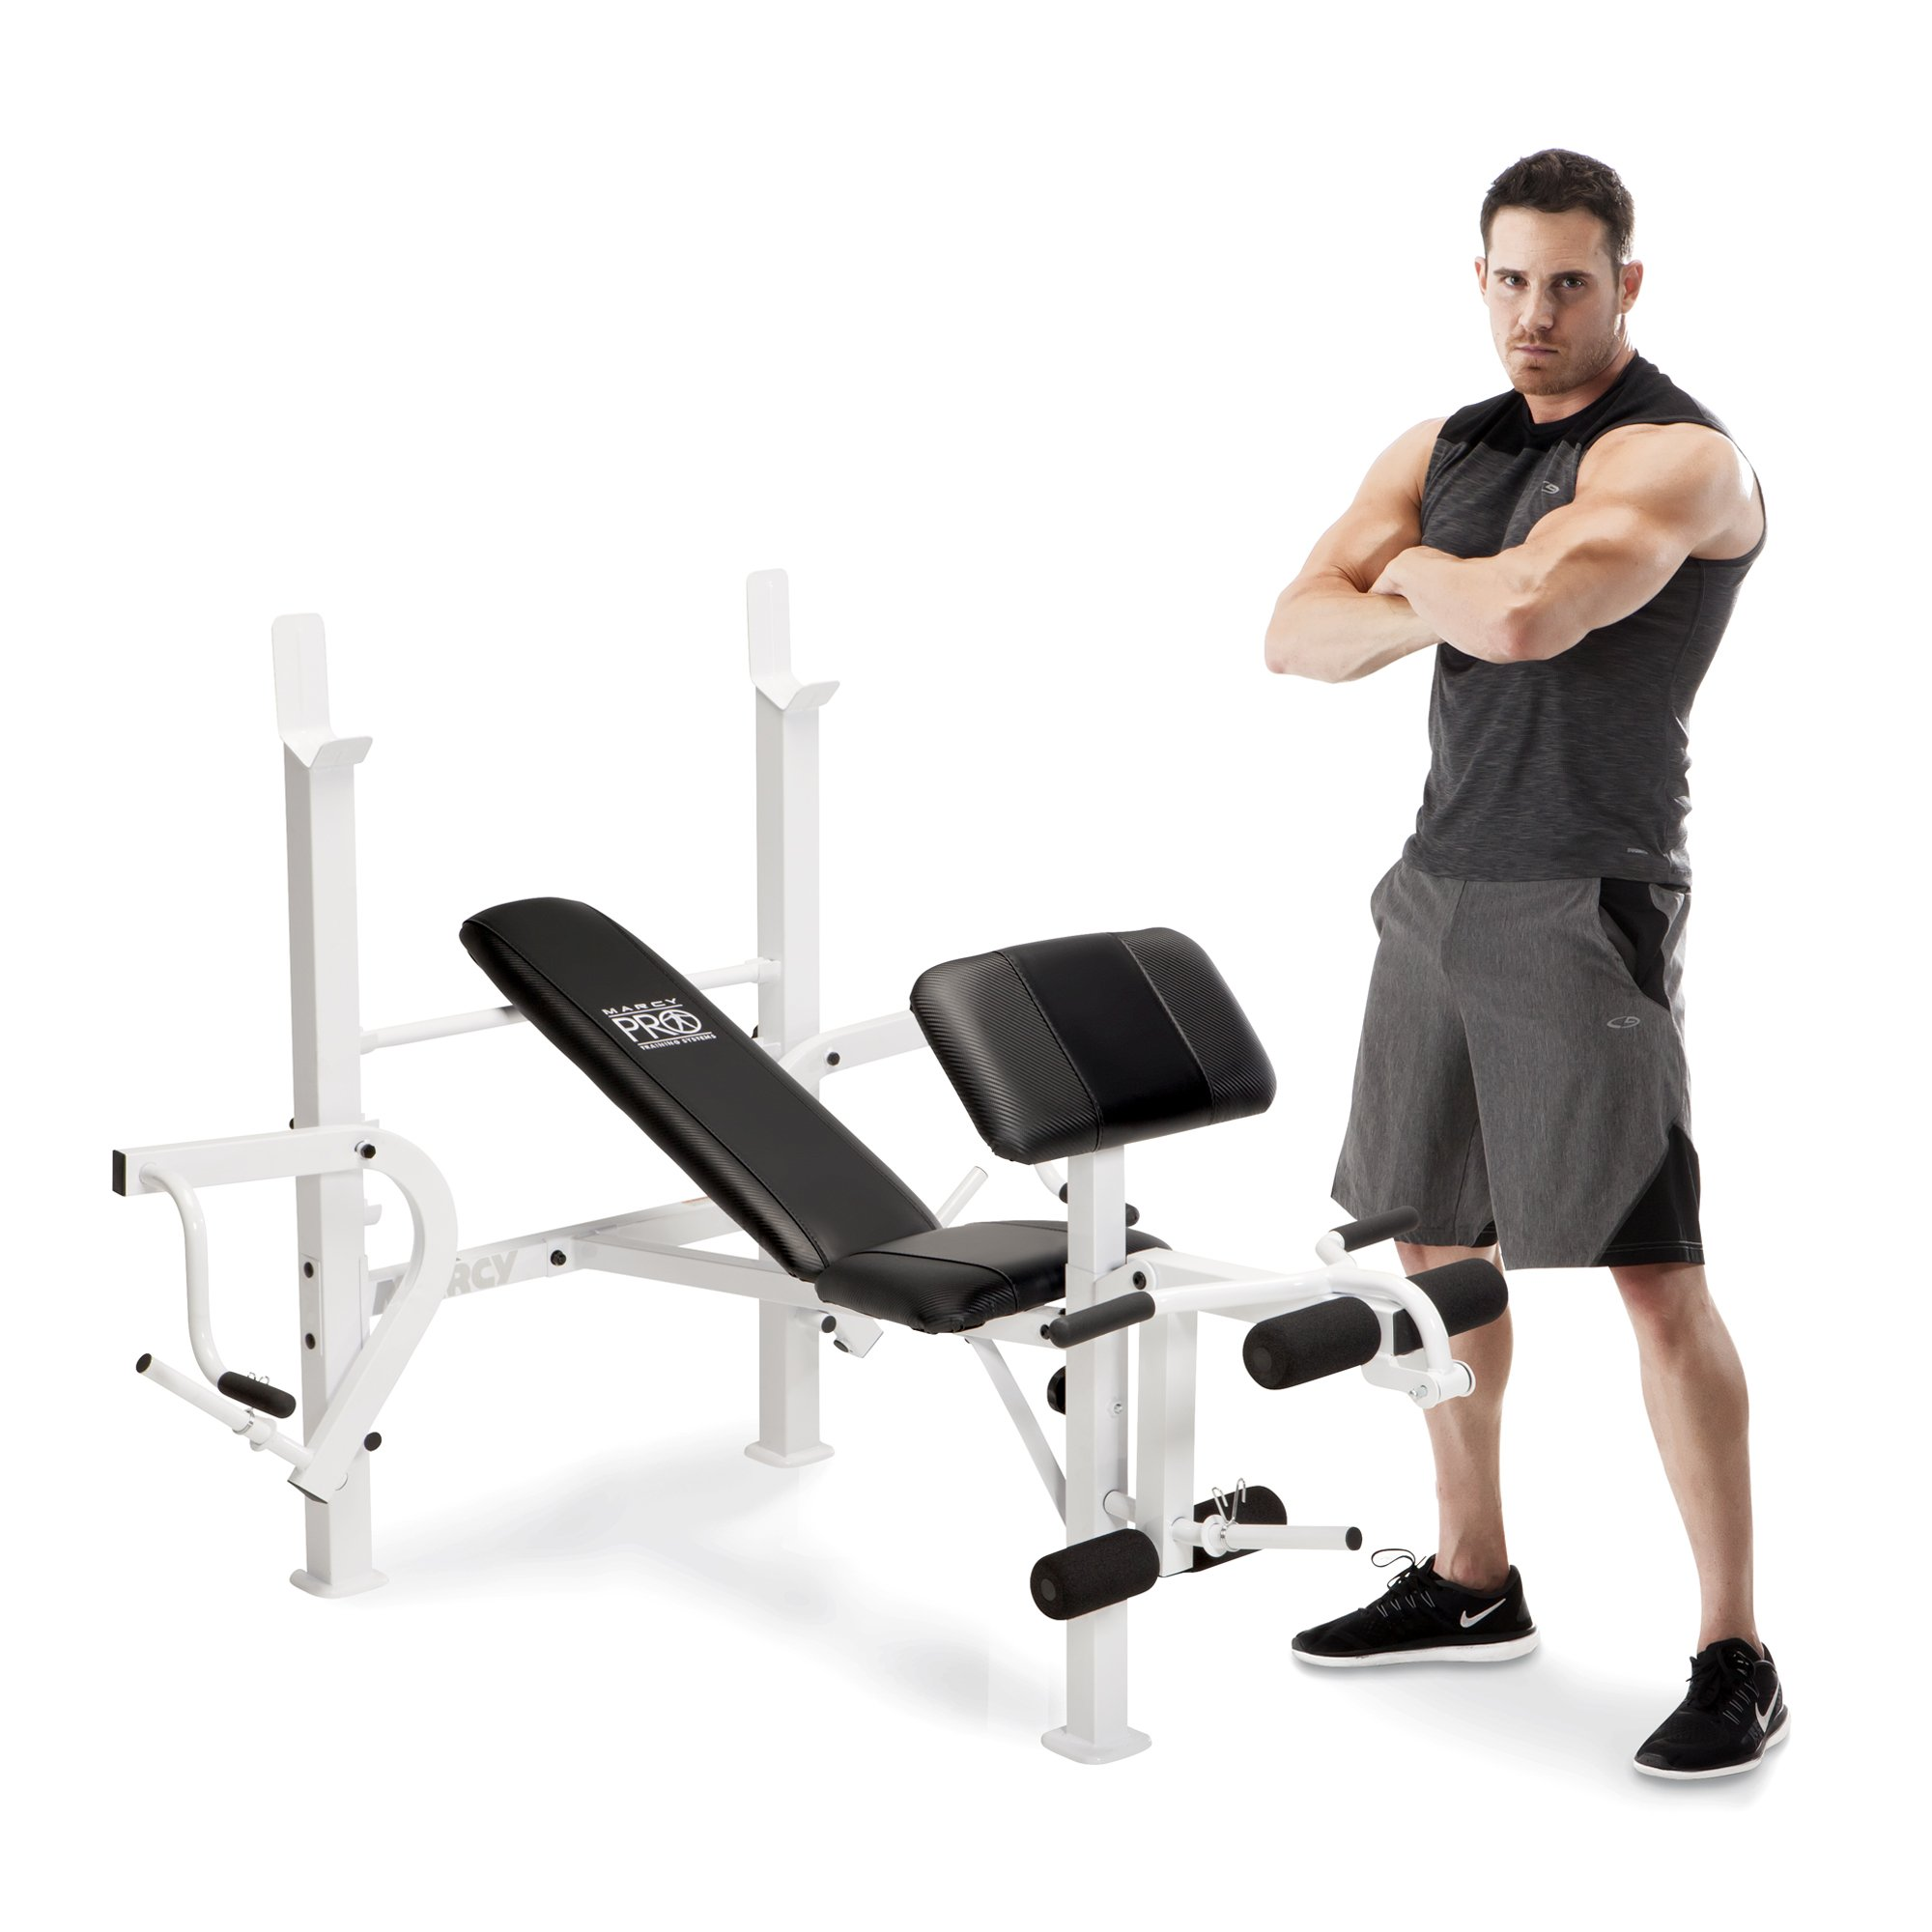 Marcy Diamond Elite Classic Multipurpose Home Gym Workout Lifting Weight Bench by Marcy Fitness